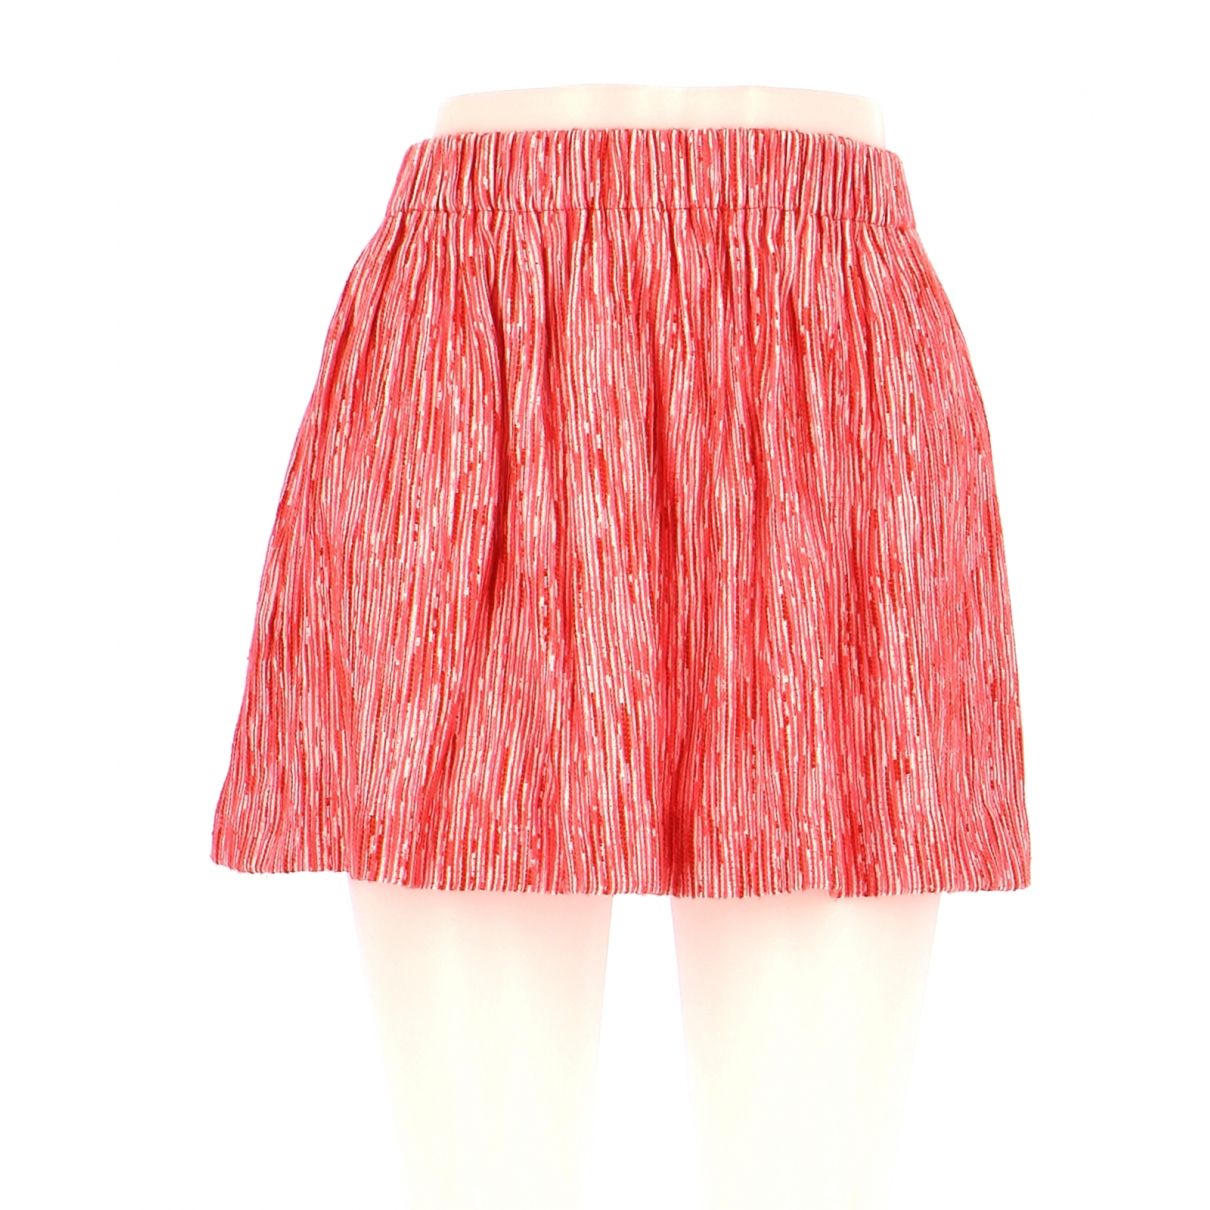 Maje N Pink Cotton skirt for Women 36 FR